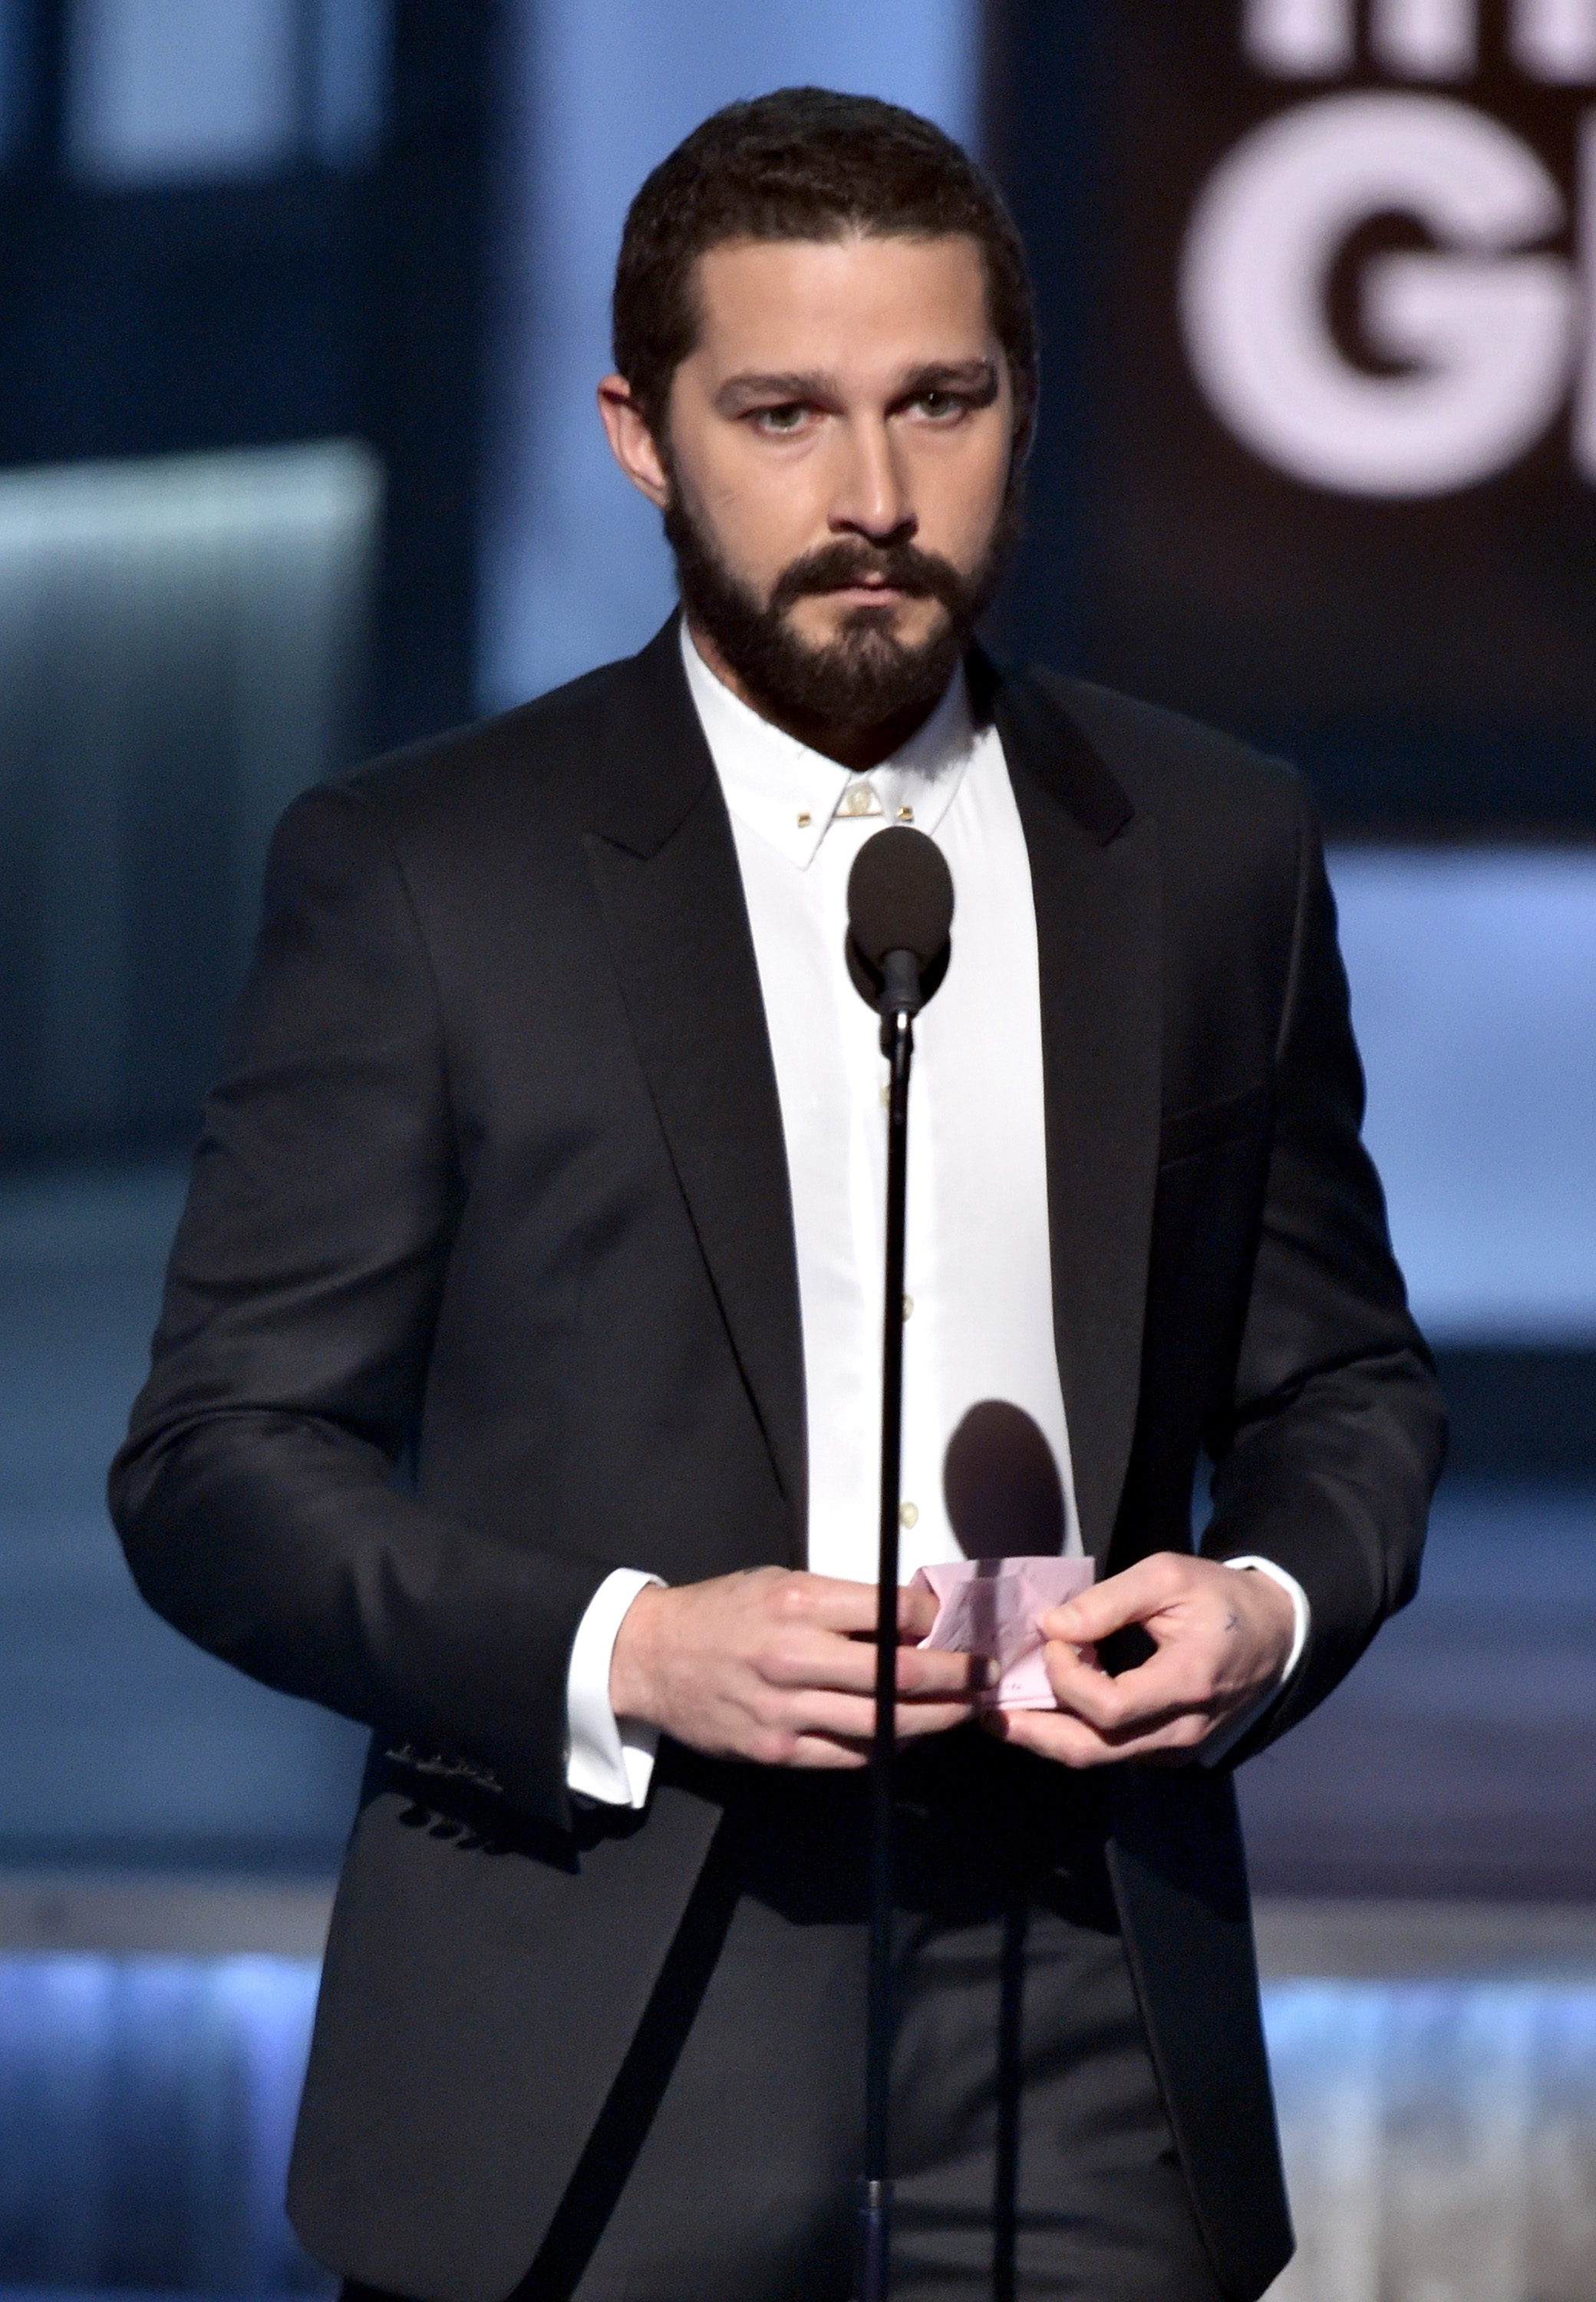 Actor Shia LaBeouf speaks onstage during The 57th Annual GRAMMY Awards at the STAPLES Center on February 8, 2015 in Los Angeles, California.  (Photo by Kevin Winter/WireImage)